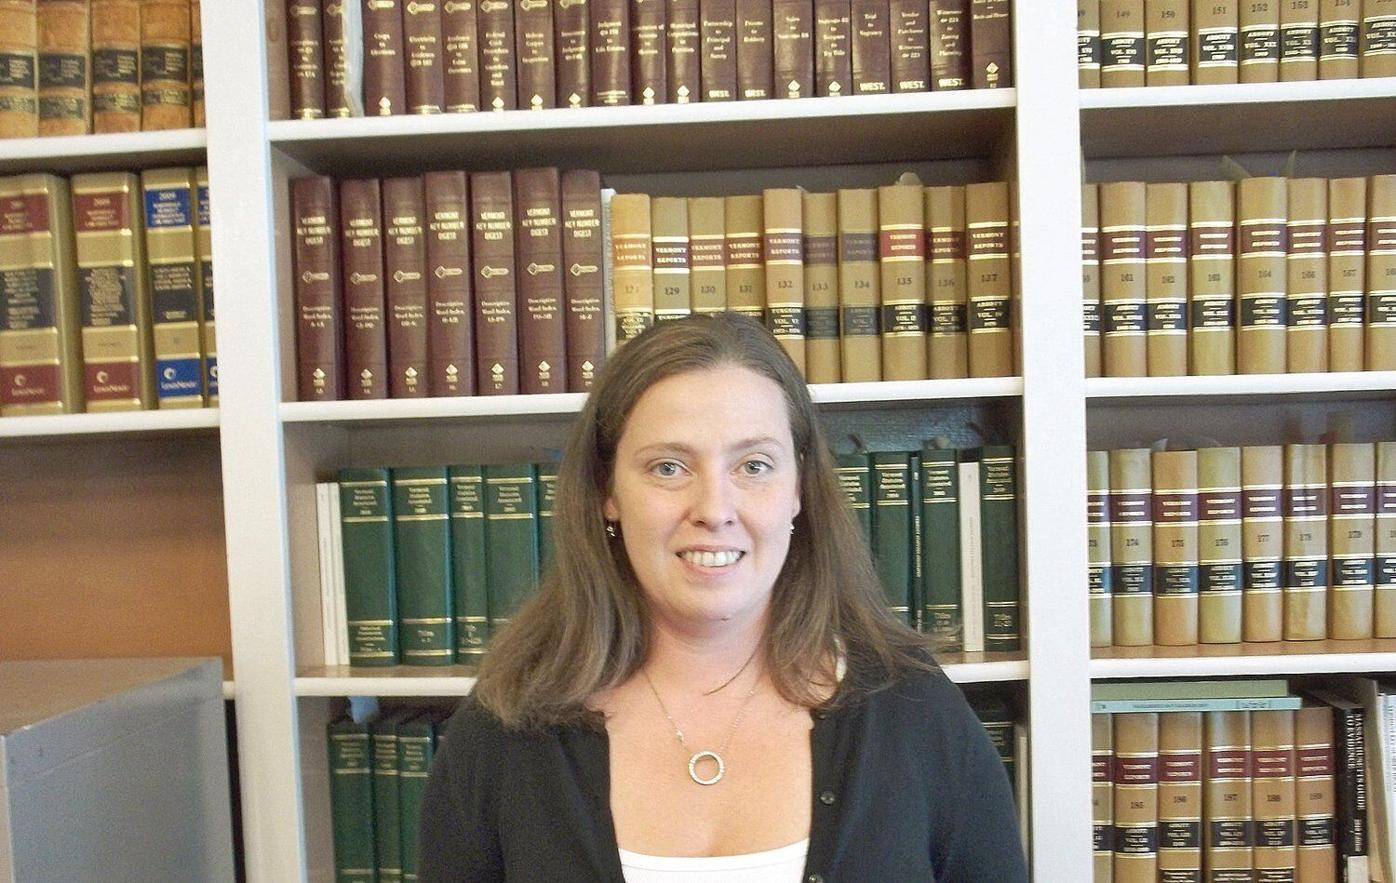 No law school needed: Legal assistant becomes lawyer